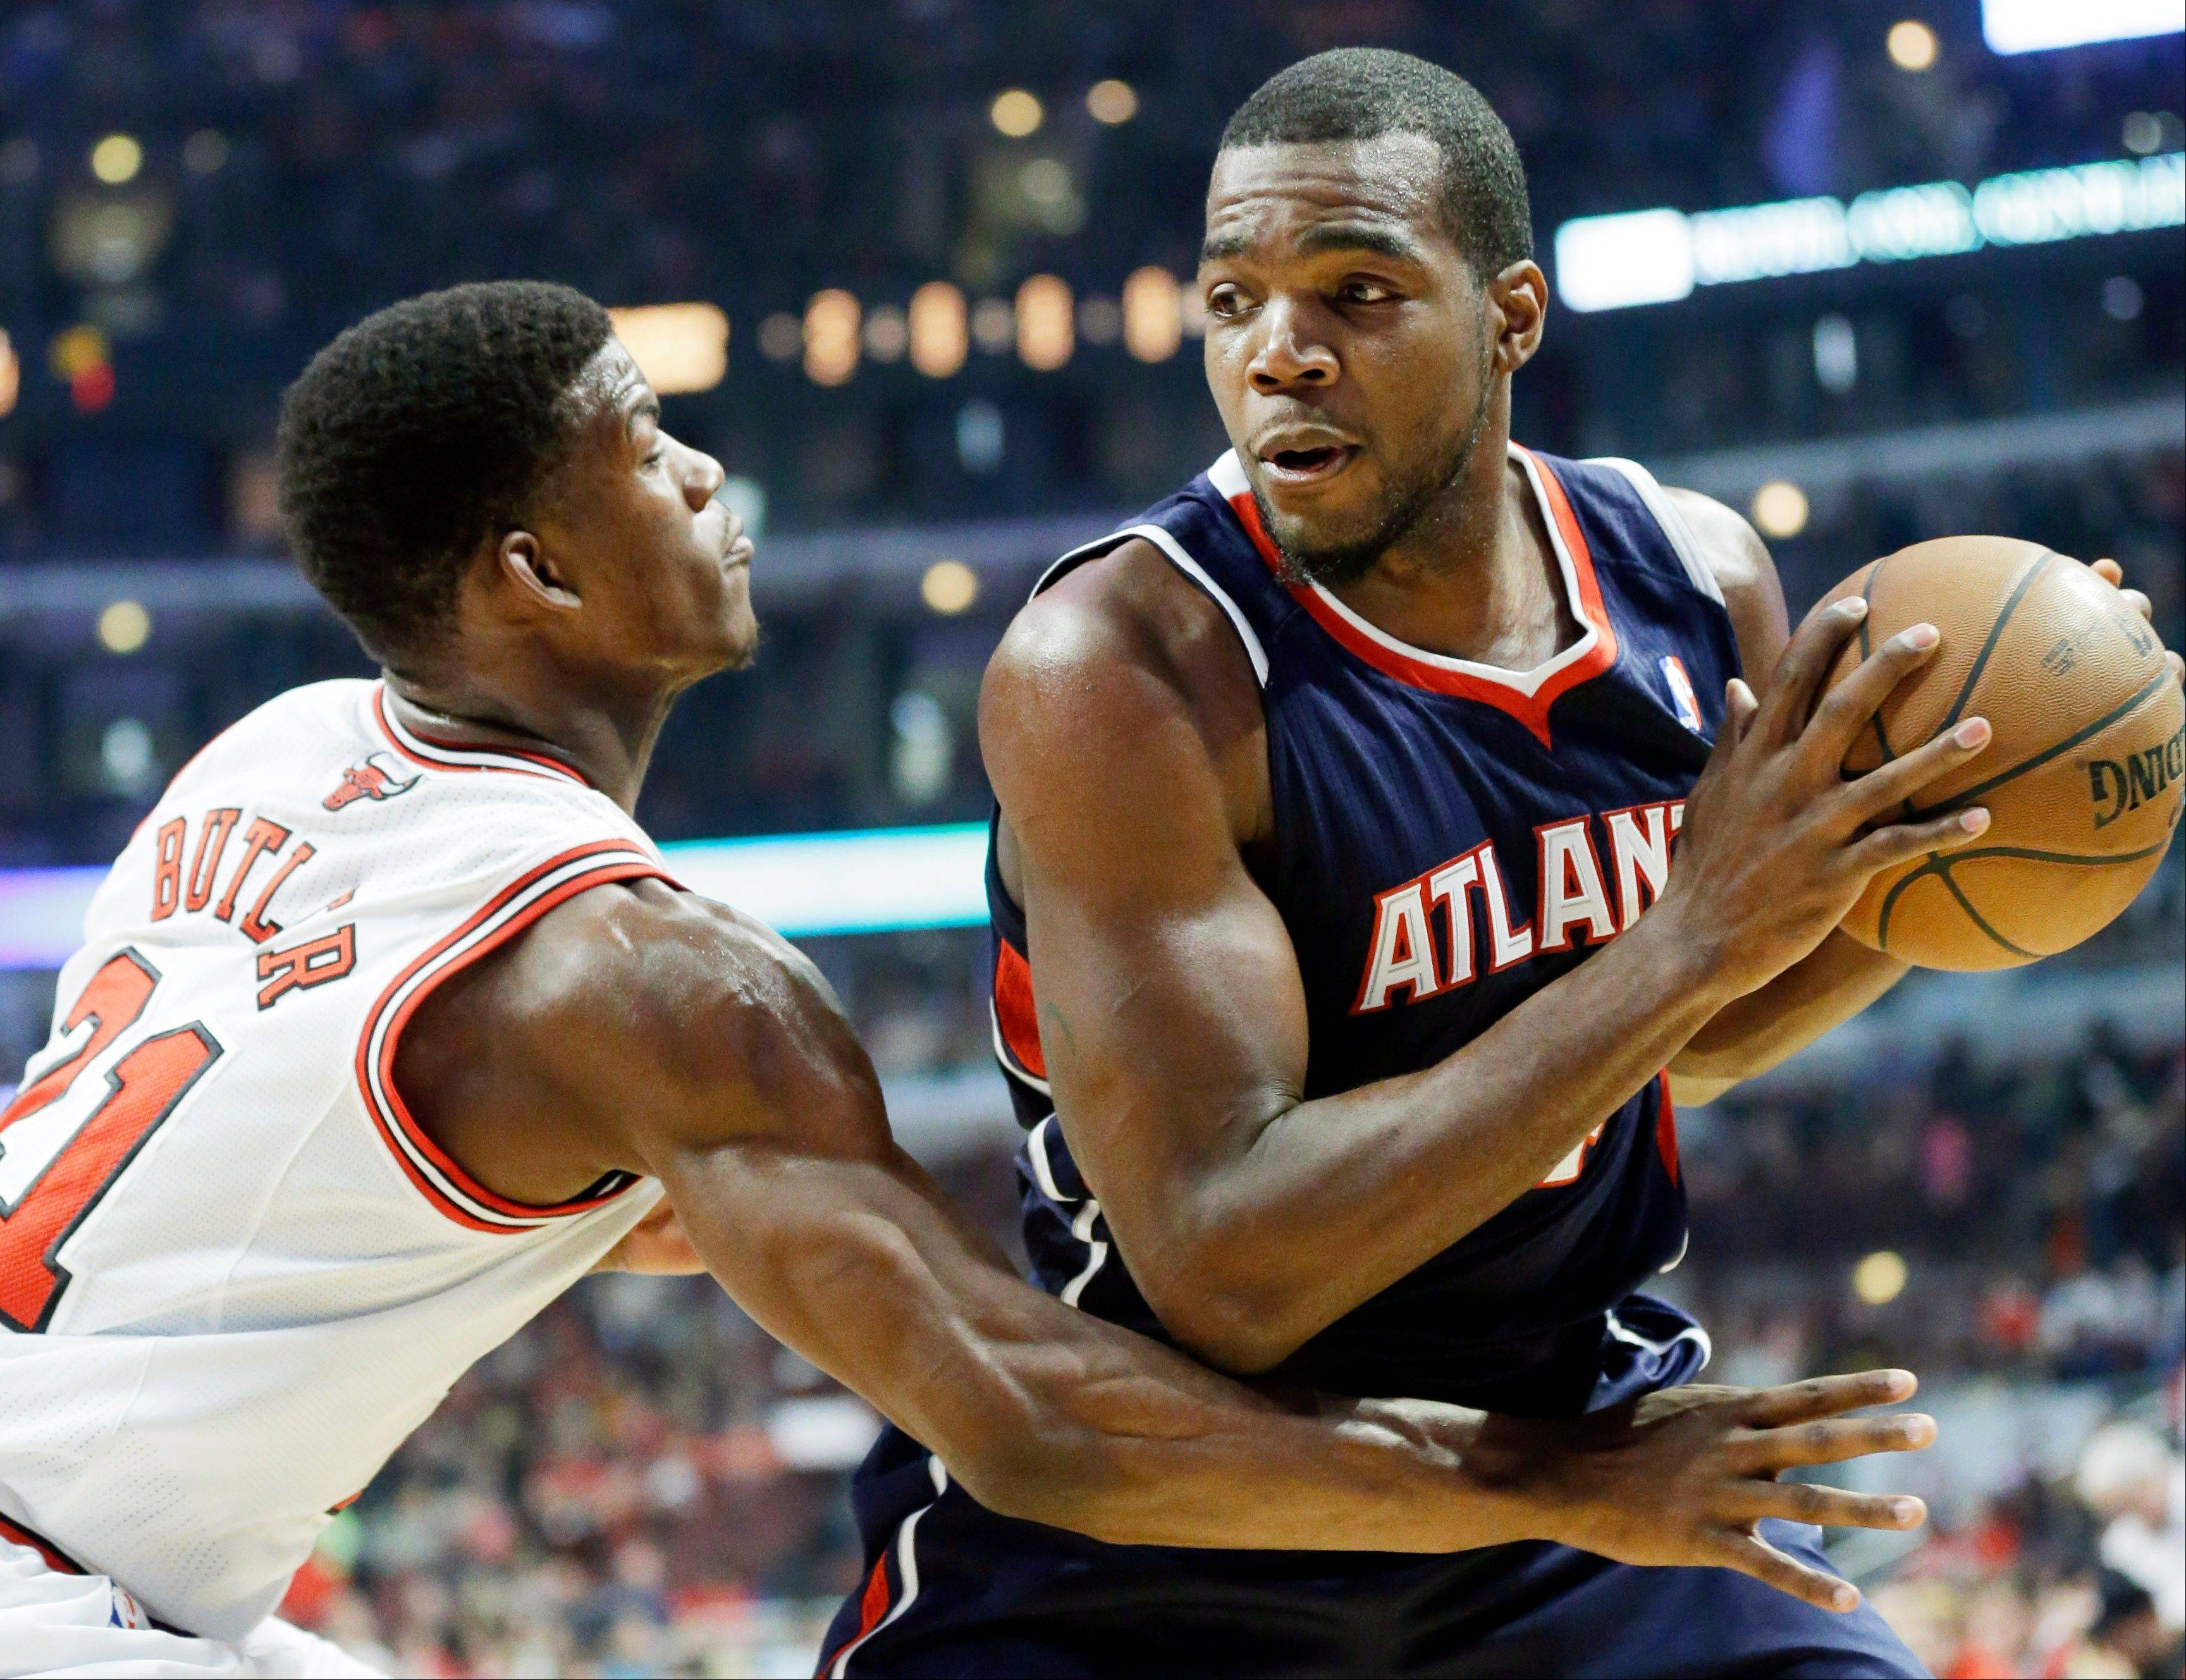 Bulls guard Jimmy Butler sticks close to Hawks forward Paul Millsap as Millsap looks to pass during the Bulls' victory Saturday night.